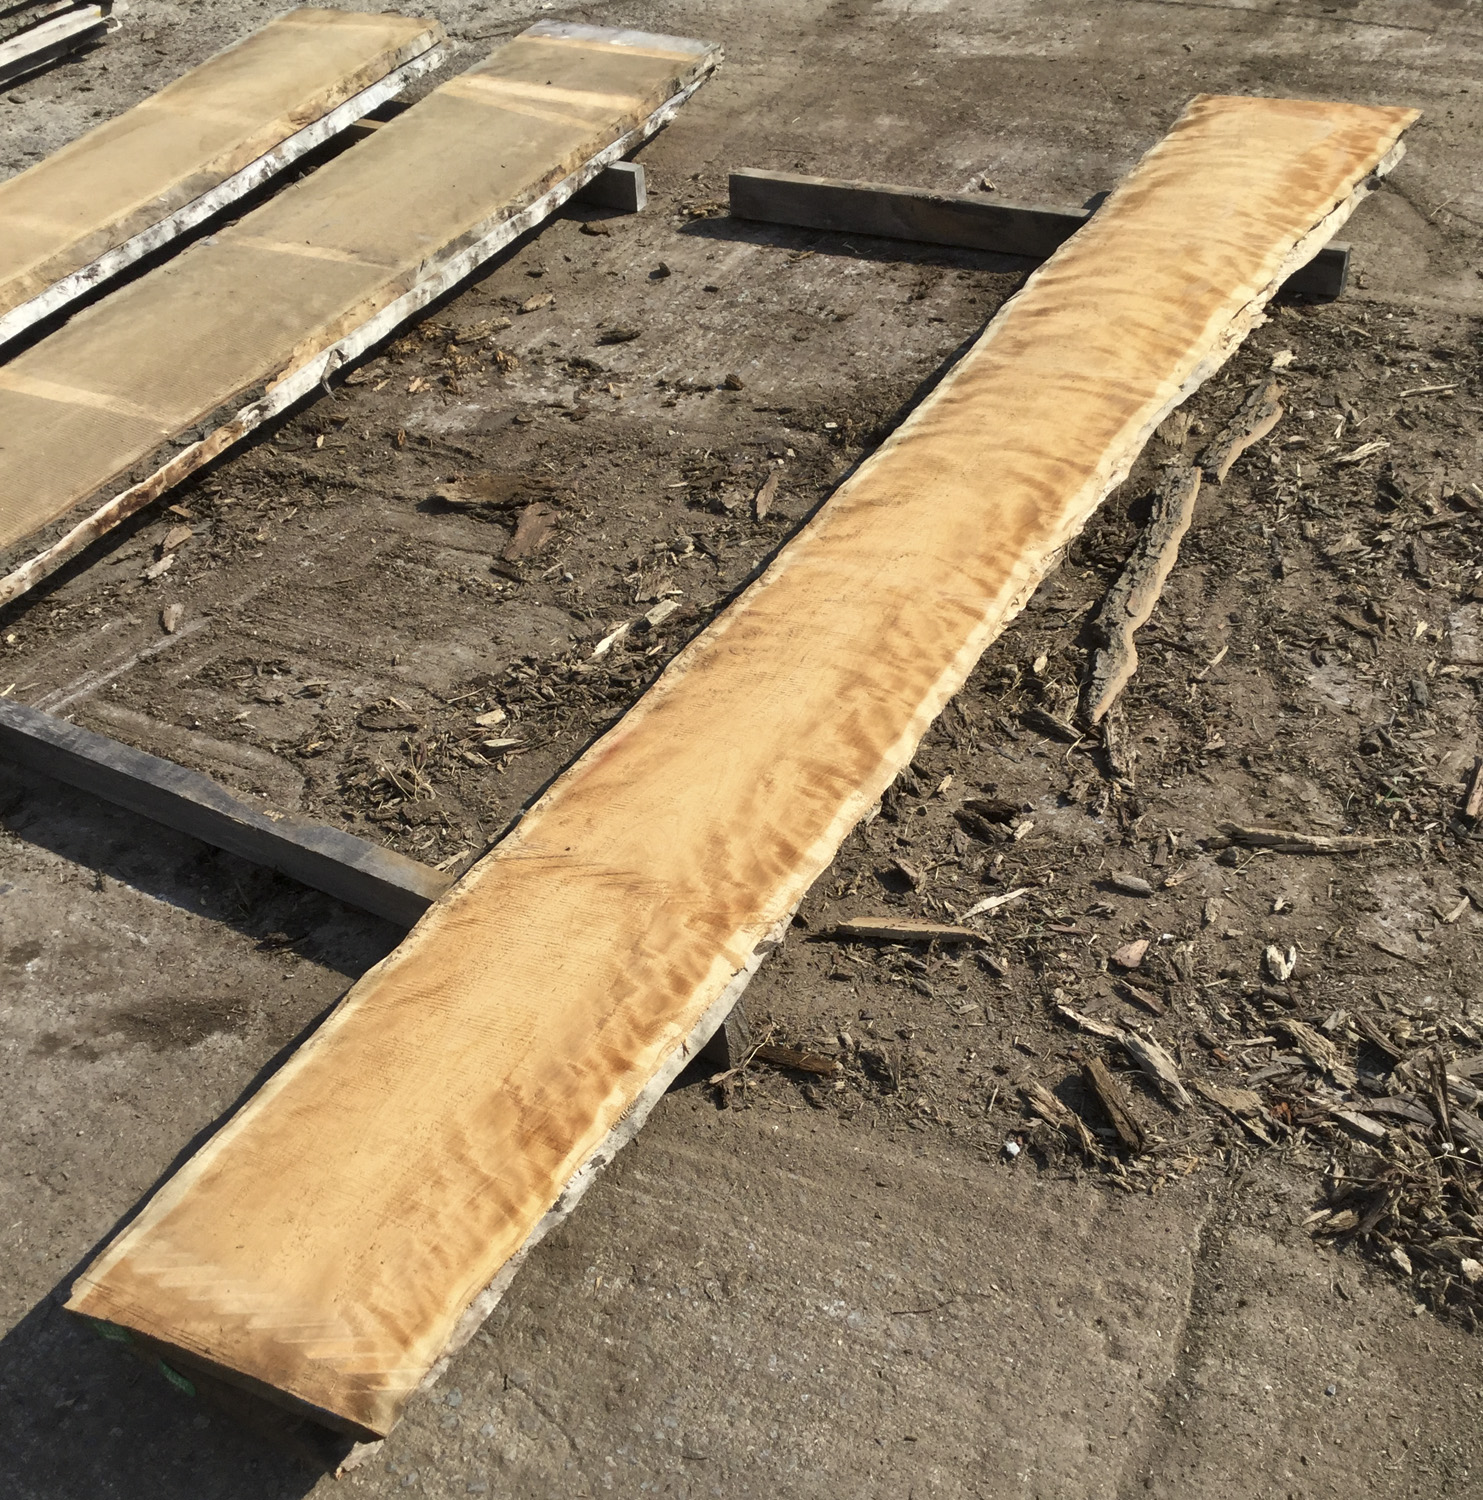 New 5/4 Cherry boules - figured and non-figured material available. Live edge cherry slabs at Hearne Hardwoods Inc.